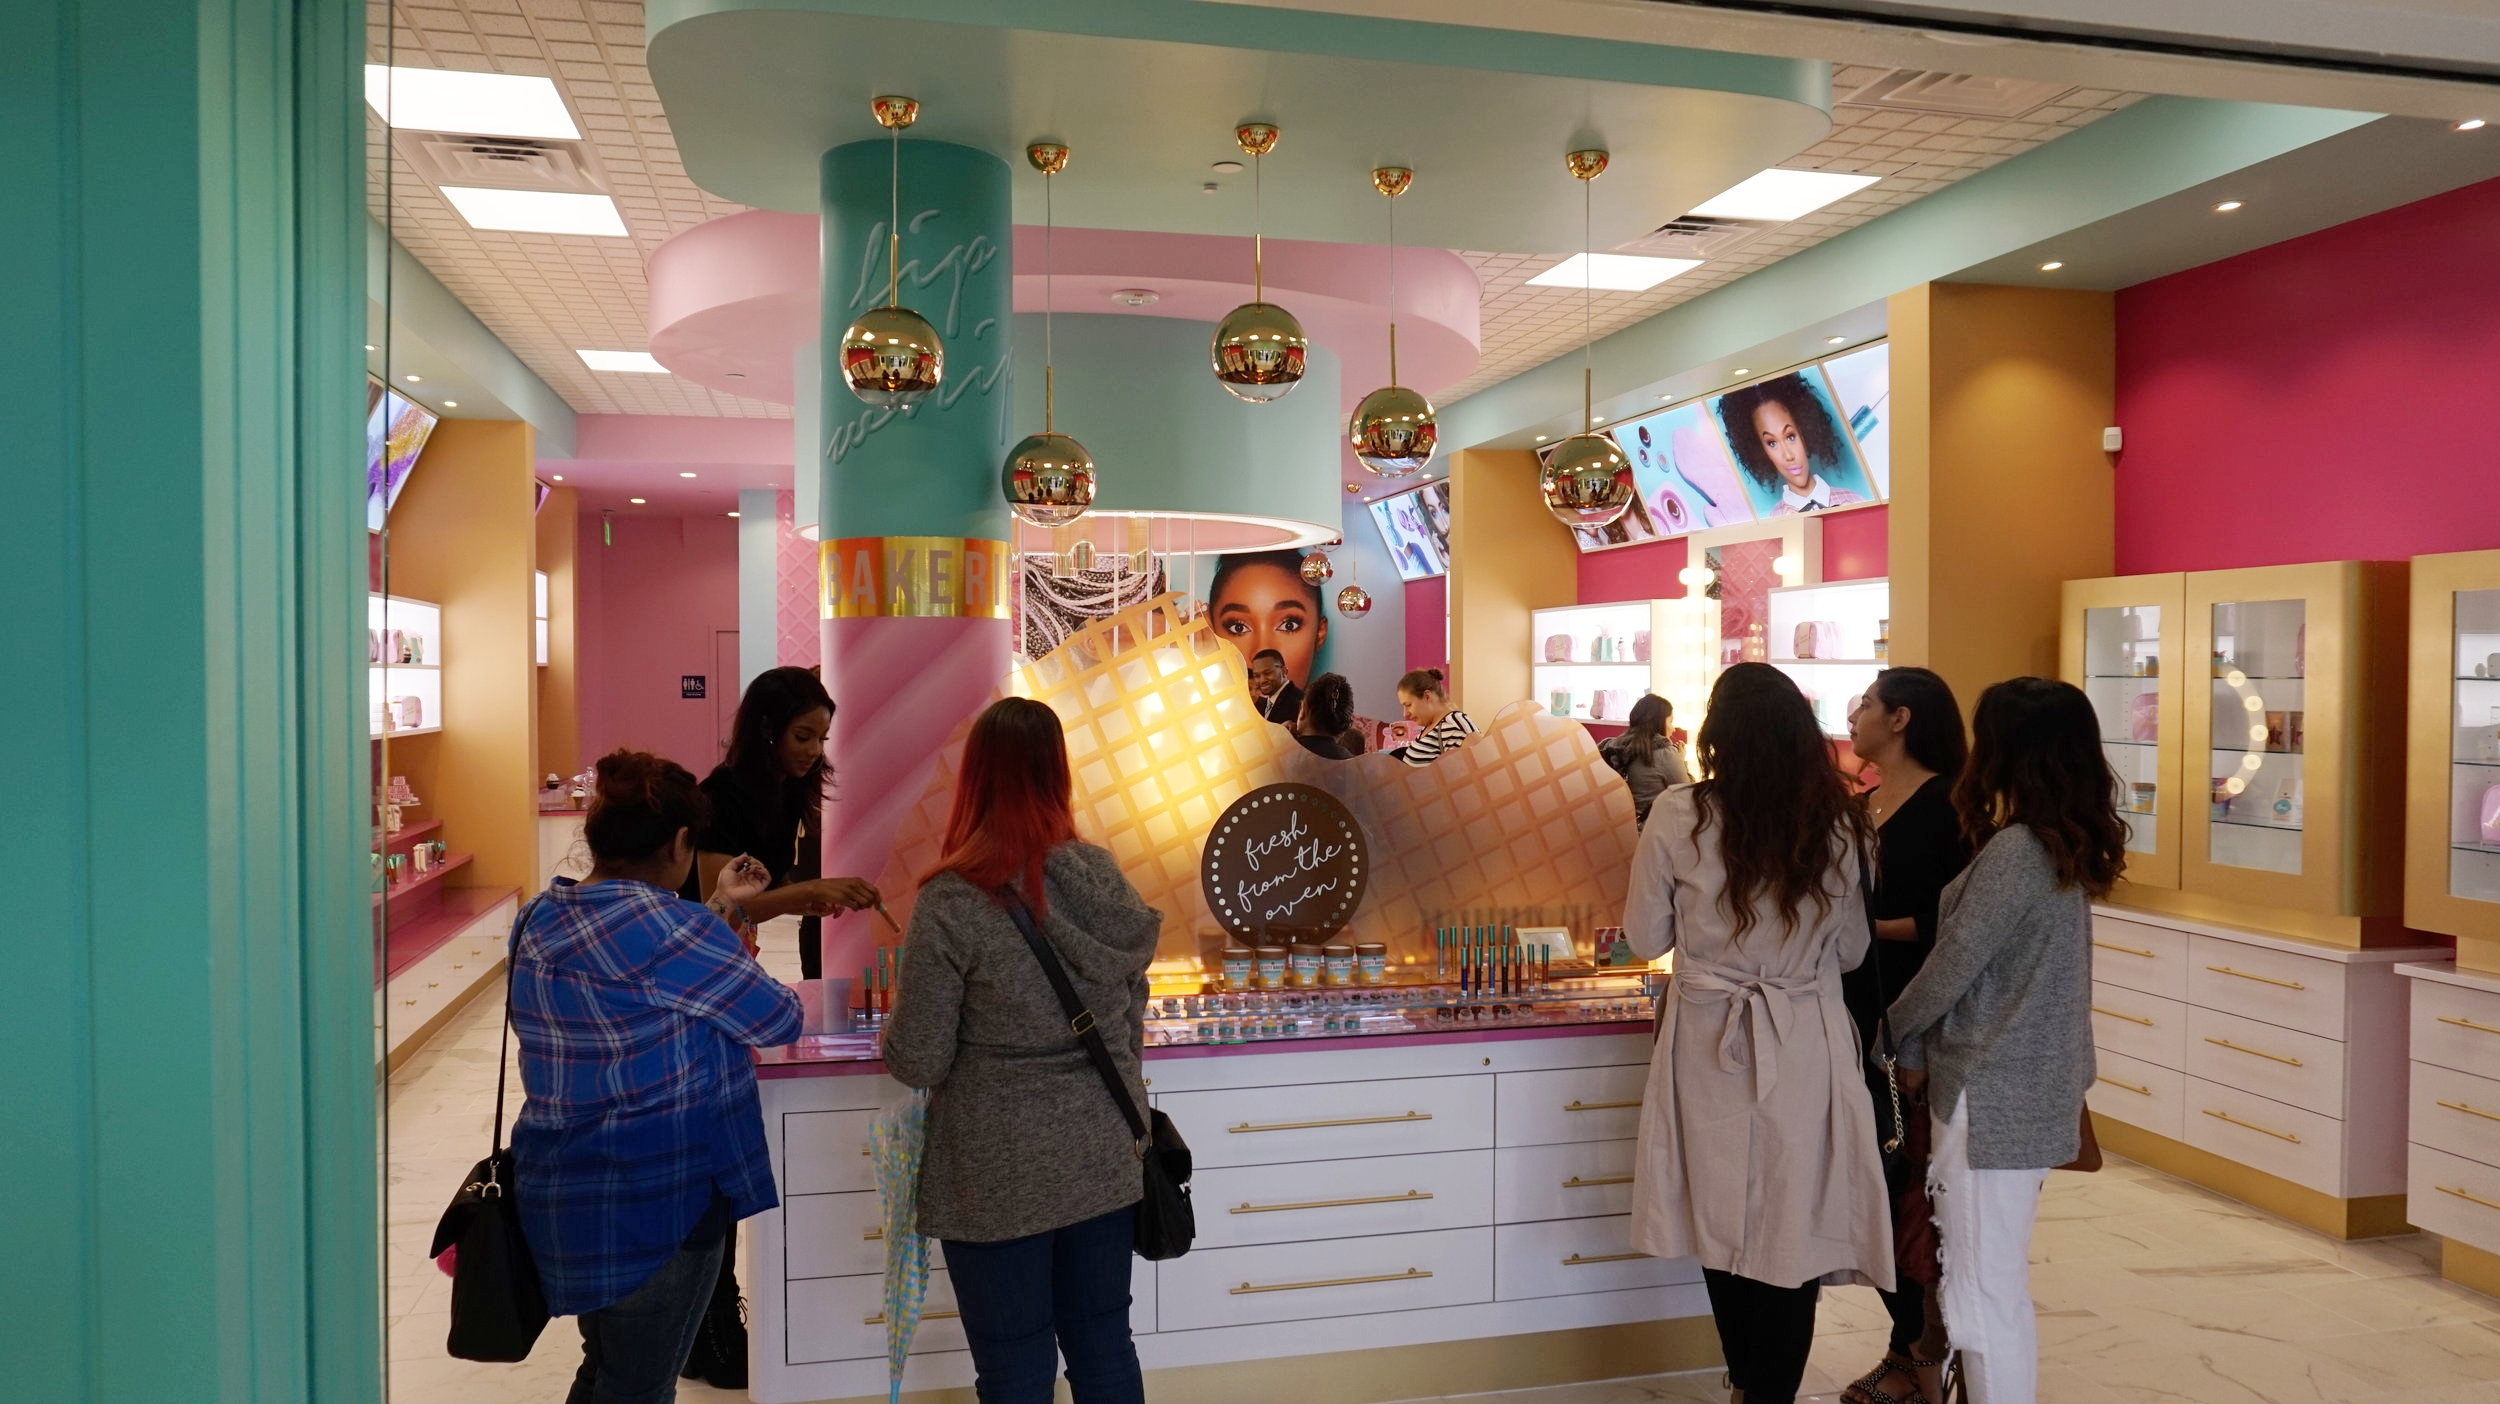 This inside of the store is super cute!!! it matches the Beauty Bakerie's concept perfectly!!!! The brand's theme is revolved around sweets and bakery items.